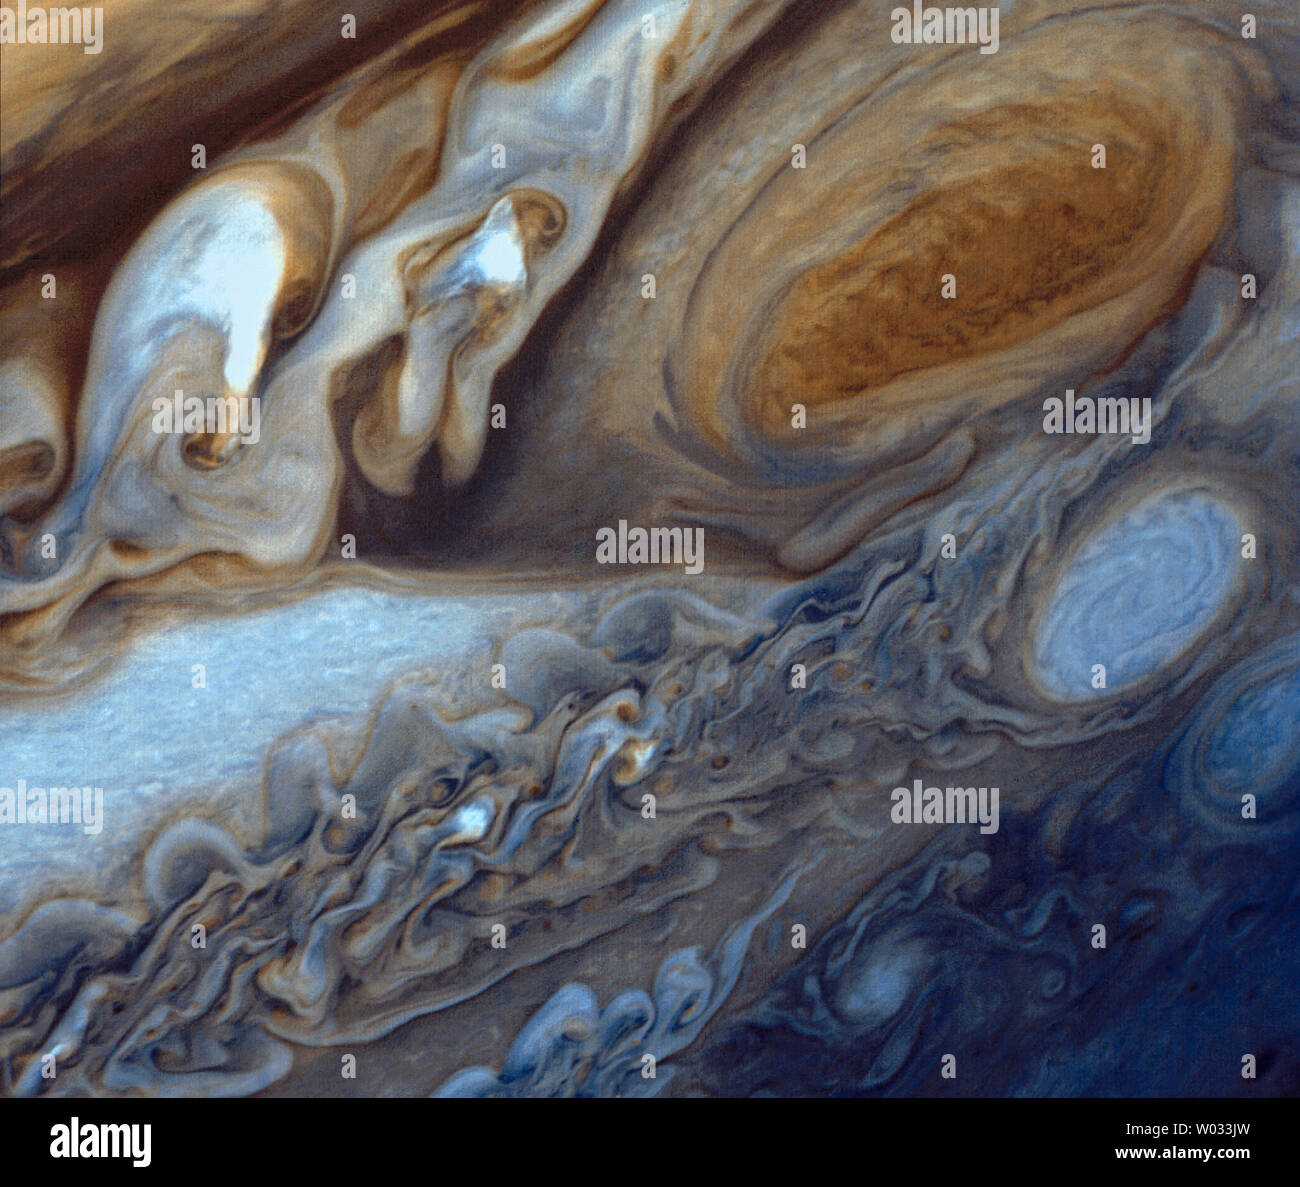 Jupiter's Great Red Spot is viewed by the Voyager I spacecraft on March 5, 1979.  The images was re-processed in 1998, and re-released on March 20, 2014.   The Great Red Spot is a raging storm three and a half times the size of Earth located in JupiterÕs southern hemisphere. The unique photos and observations by Voyager I are still being explore to this day.   UPI/NASA .. Stock Photo